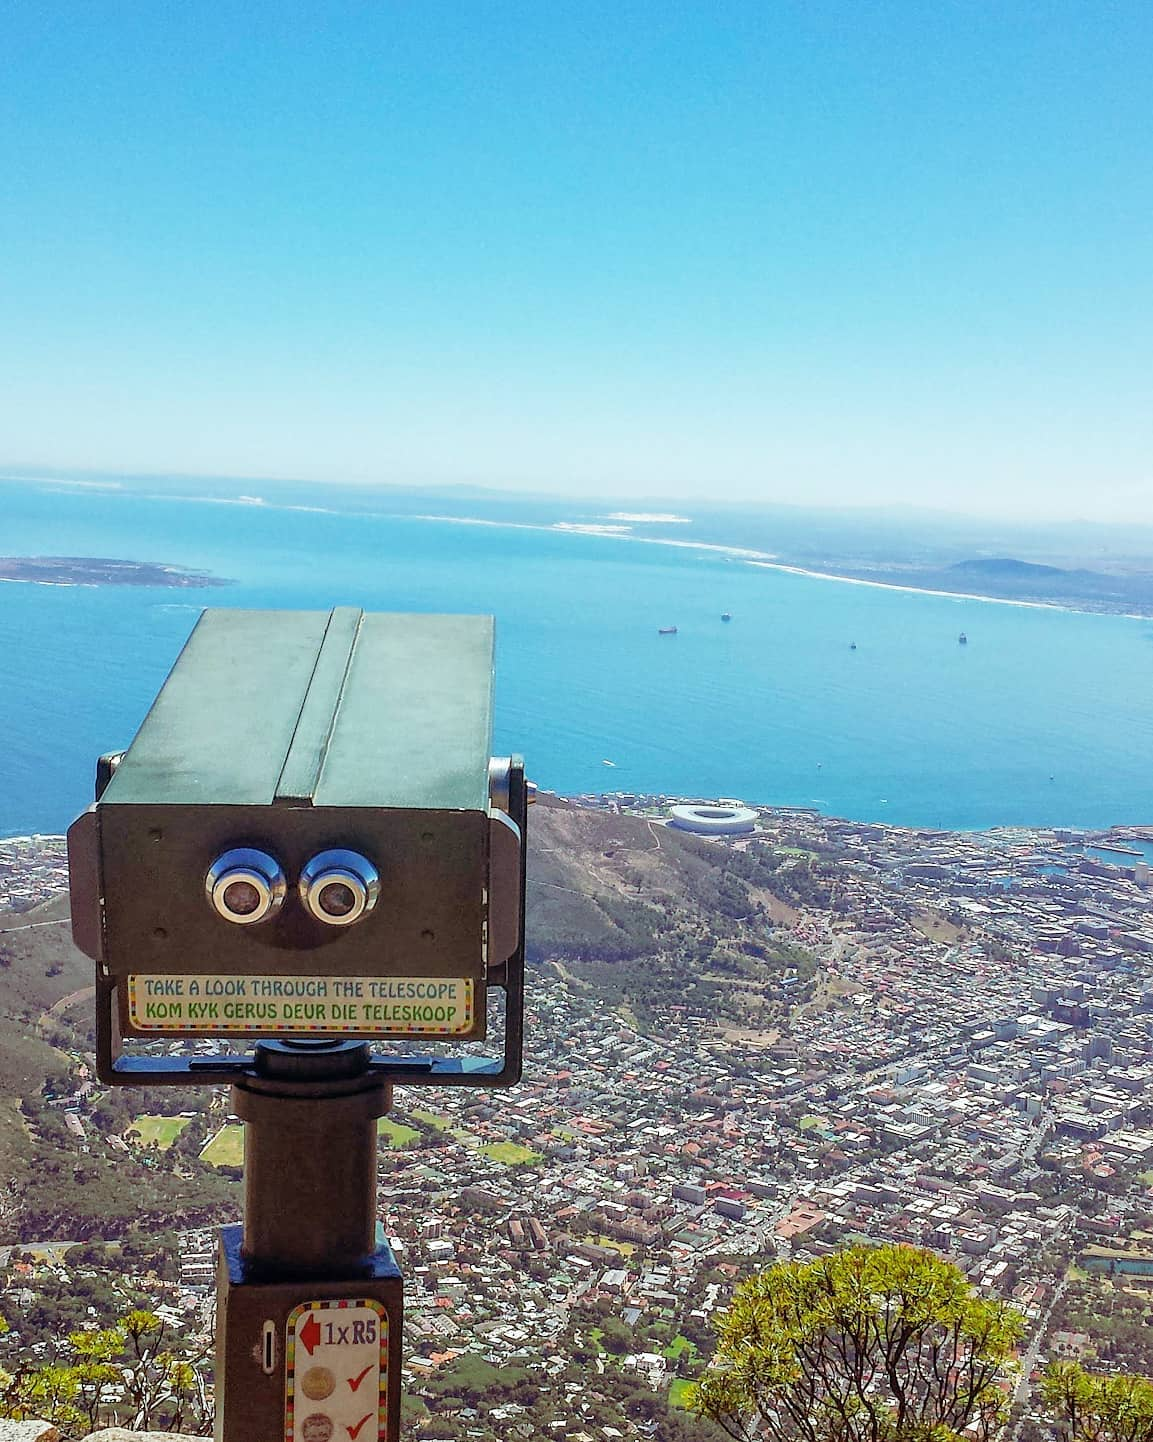 Always looking to the next journey 🌍🔭Table Mountain, South Africa 2014#capetown #africa #tbt #blue #travelawesome #southafrica #travelphoto #traveler #seaside #travelstoke #travelholic #sea #naturephotography #traveldeeper #hiking #travelphotography #nature #wakawaka #travelgram #travel #naturelovers #traveling #travelpics #mountains